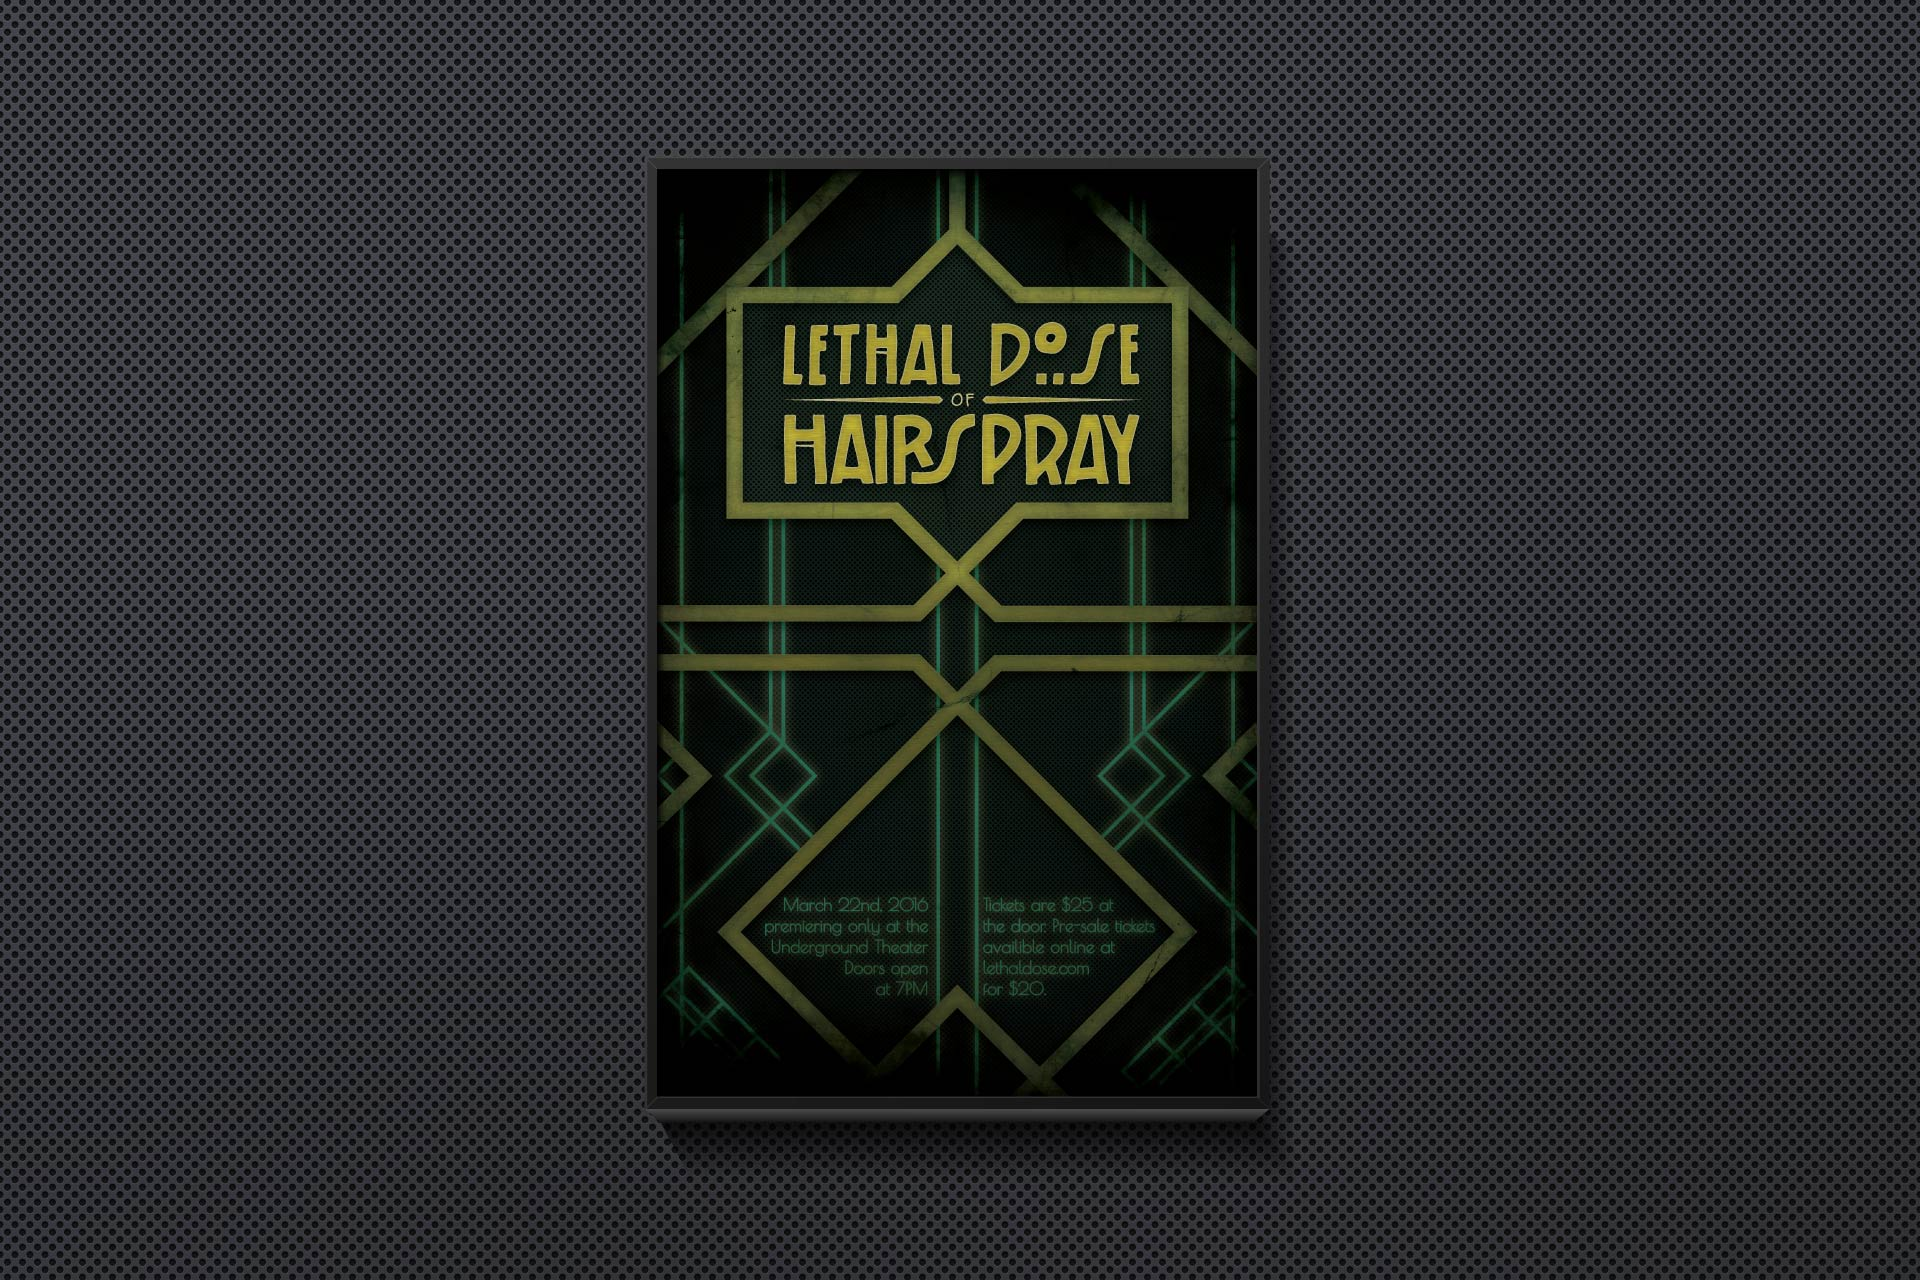 Lethal Dose of Hairspray Poster by Dustin Drake